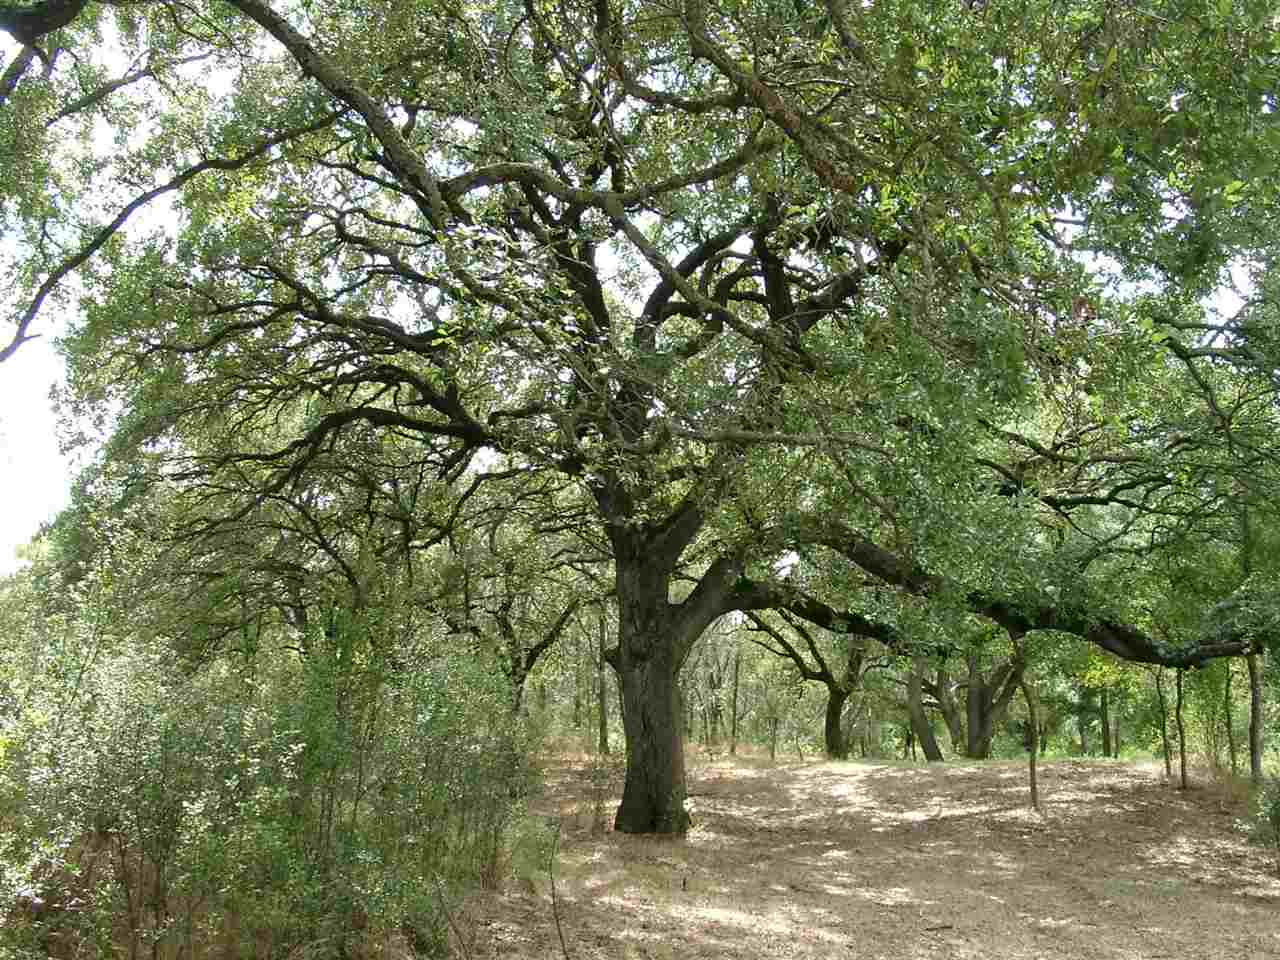 Land for Sale at 797 Glendale Road Spicewood, Texas 78654 United States